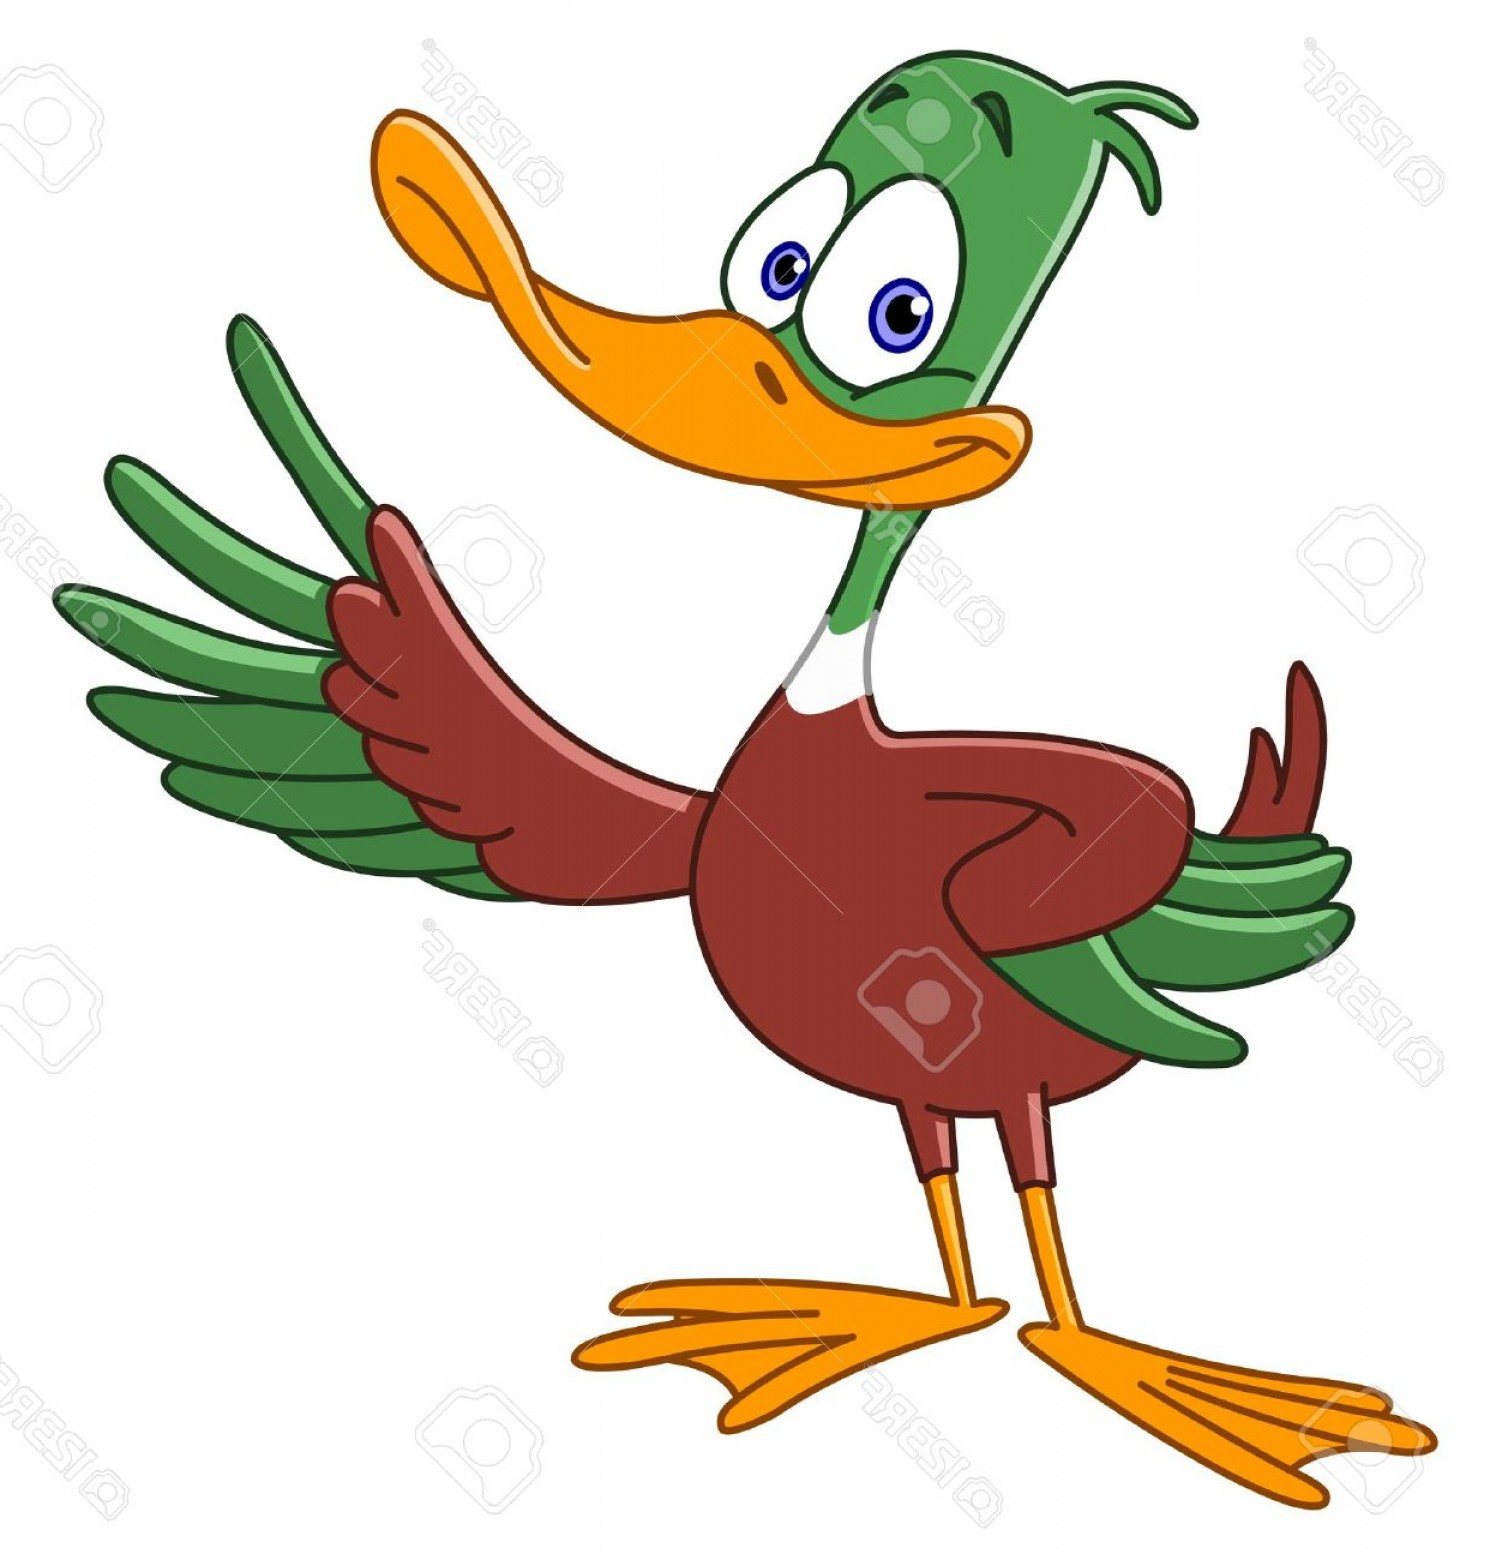 Cartoon Duck Vector: Photocartoon Duck Presenting With His Wing